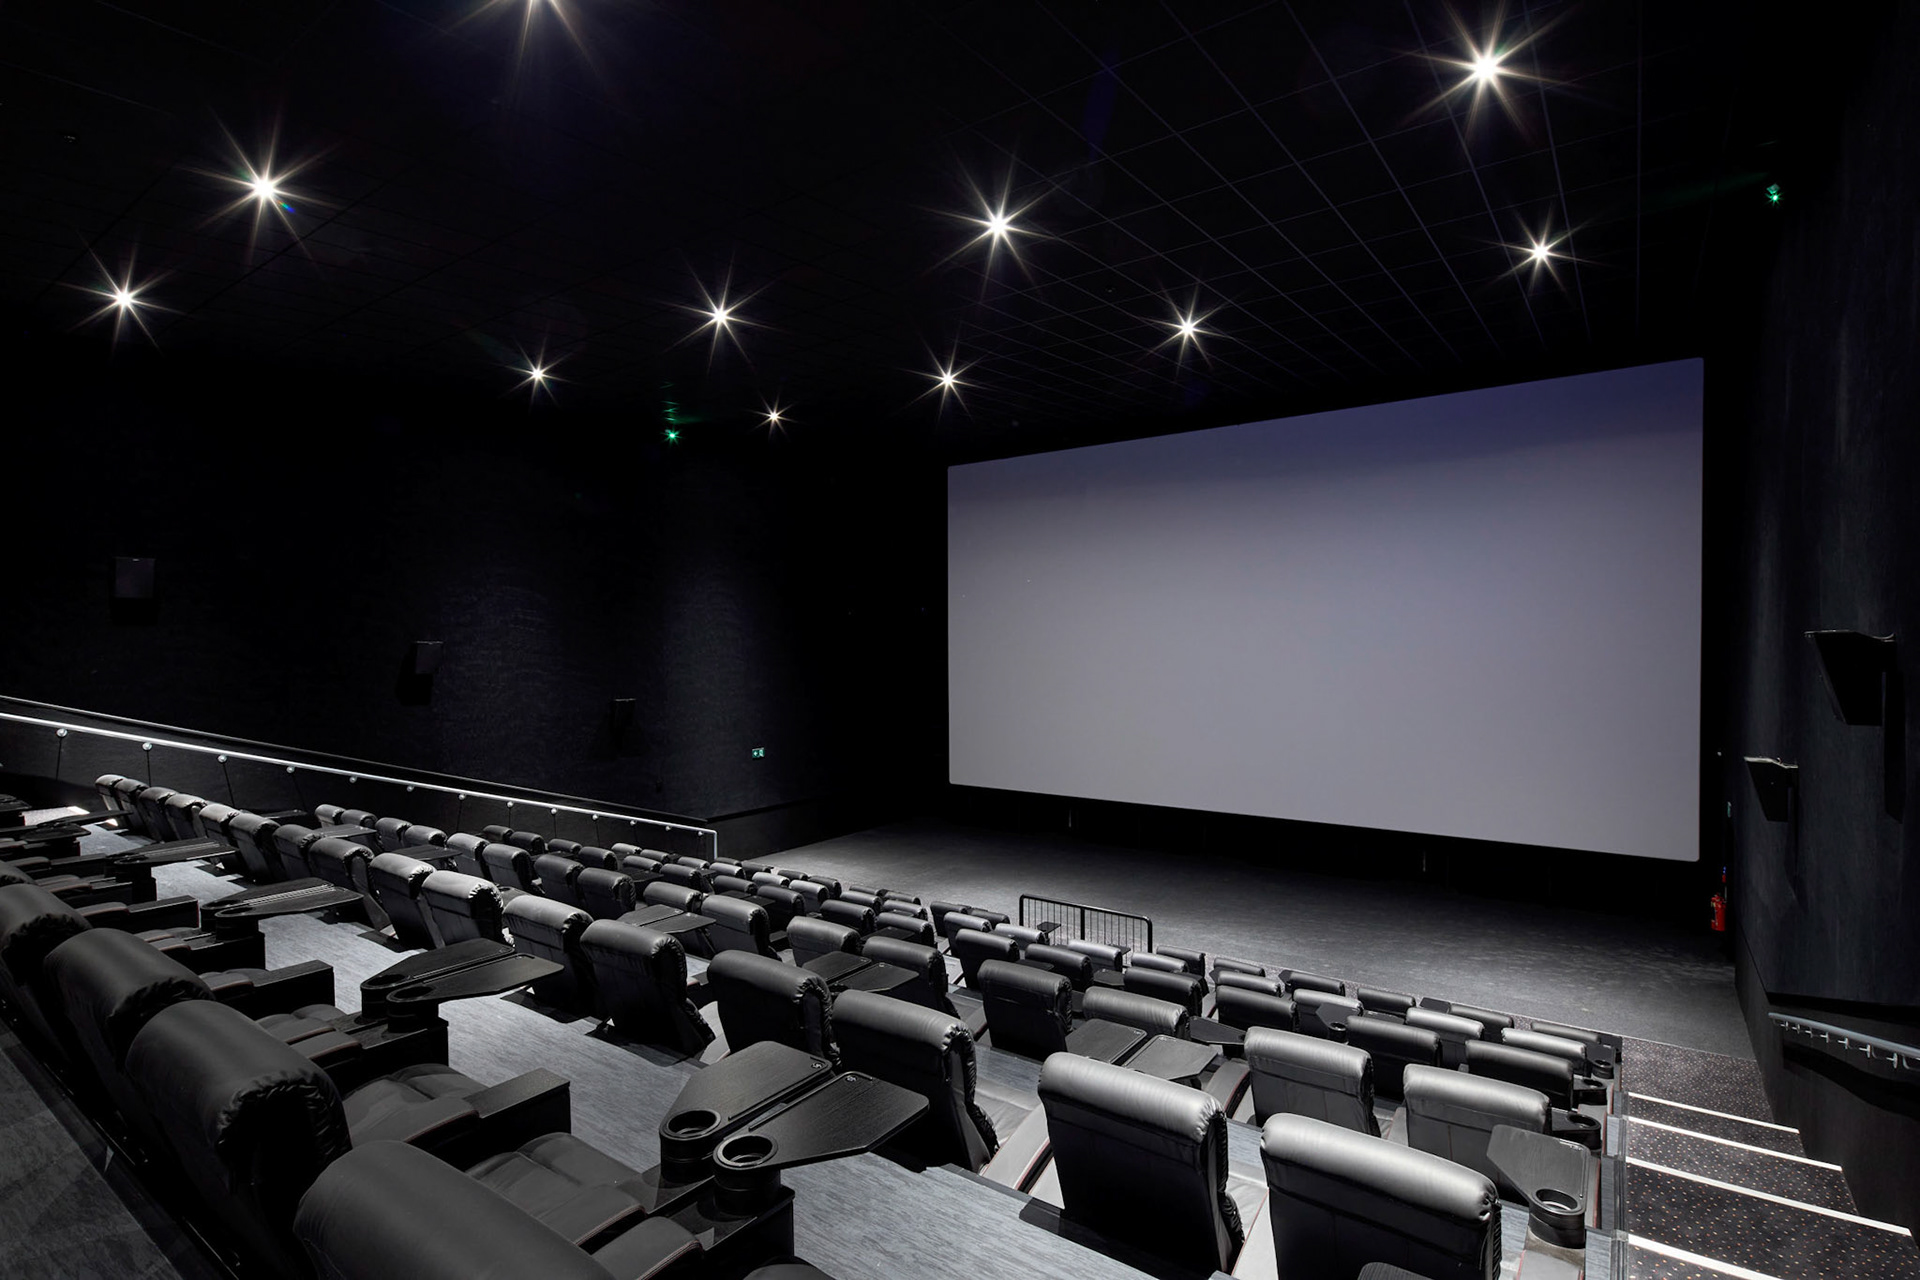 Architectural Photography St Enoch Glasgow Vue cinema inside one of the main cinema screens